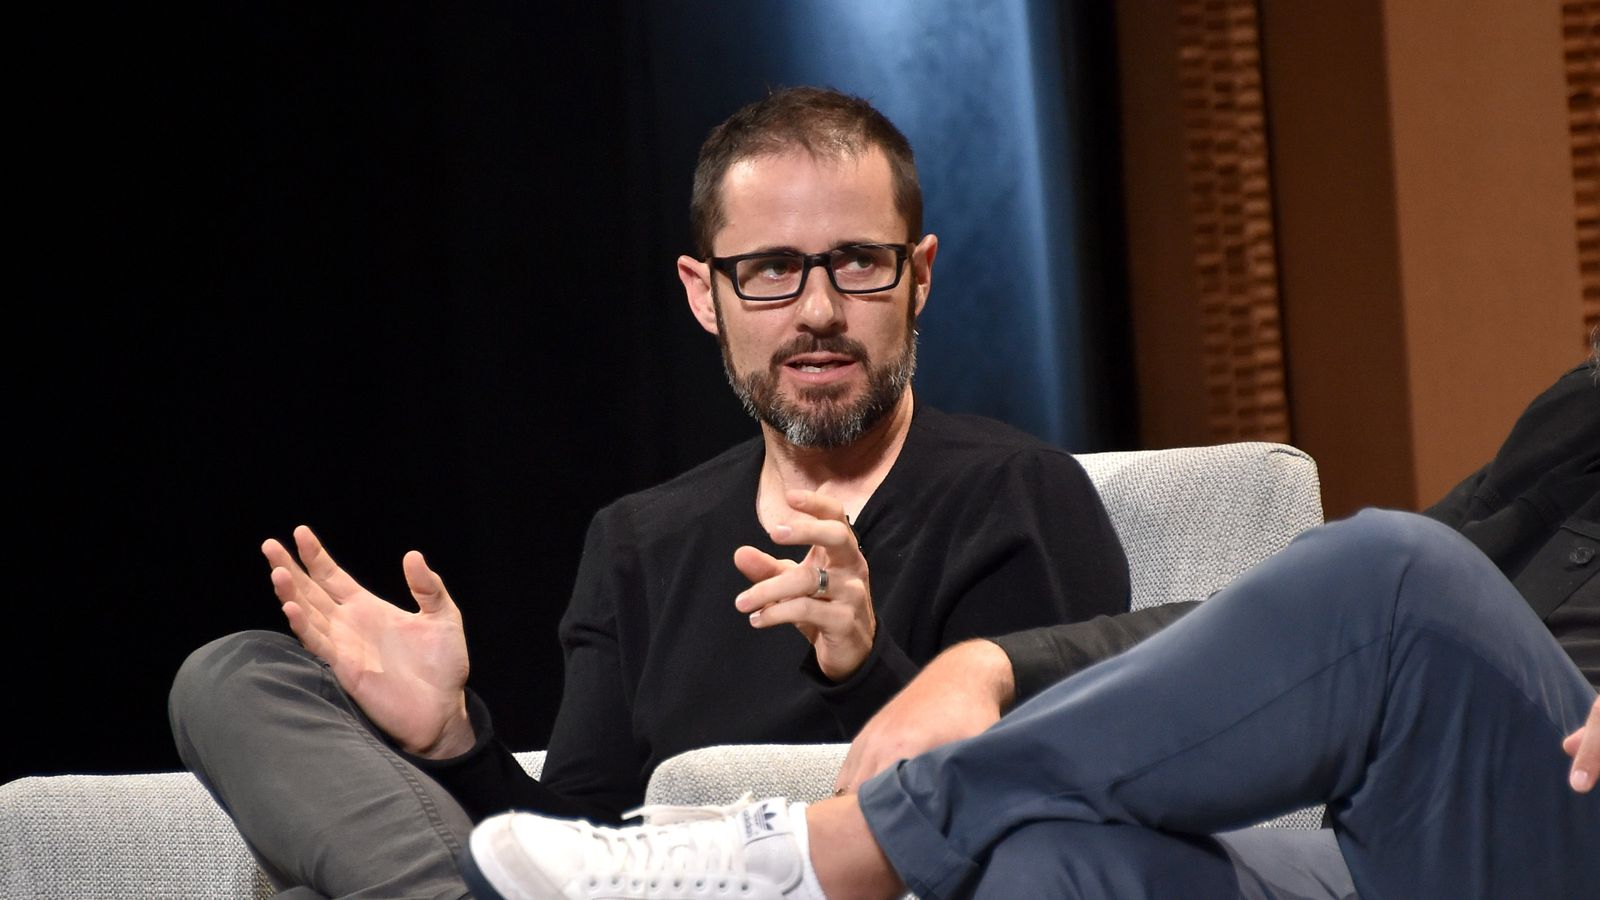 Medium says it can't make money selling ads so it's laying off a third of its staff